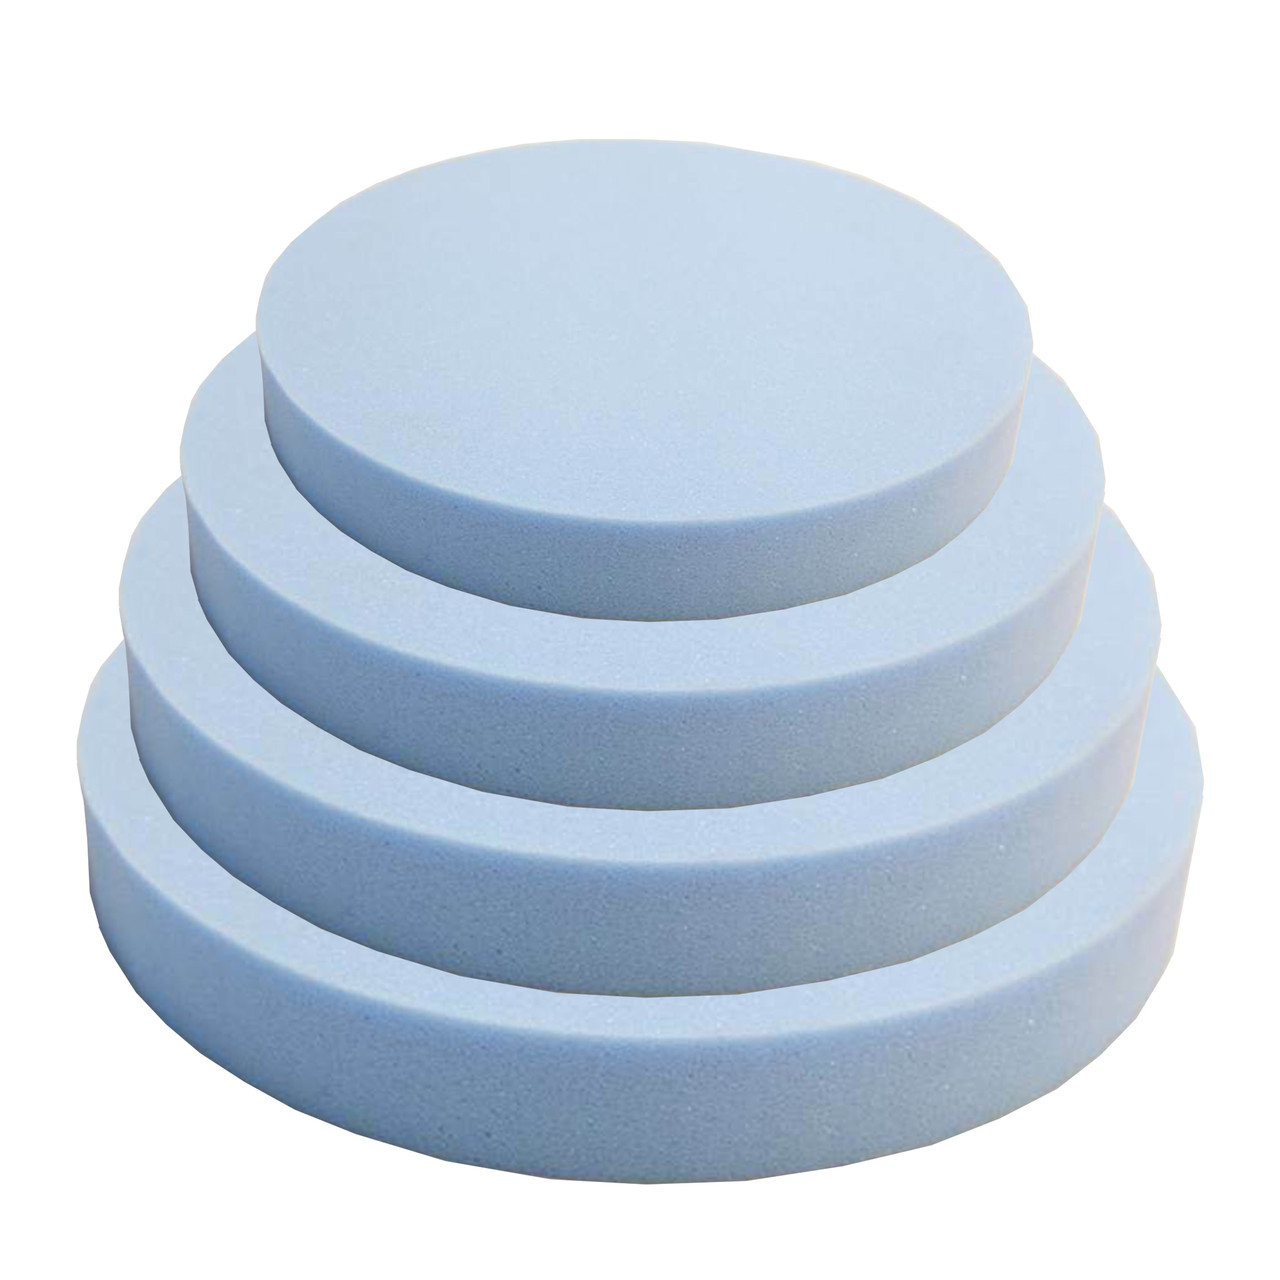 Circle foam pads for your  Upholstery, Cushion Pads, Seating, Sofa's, Patio Furniture